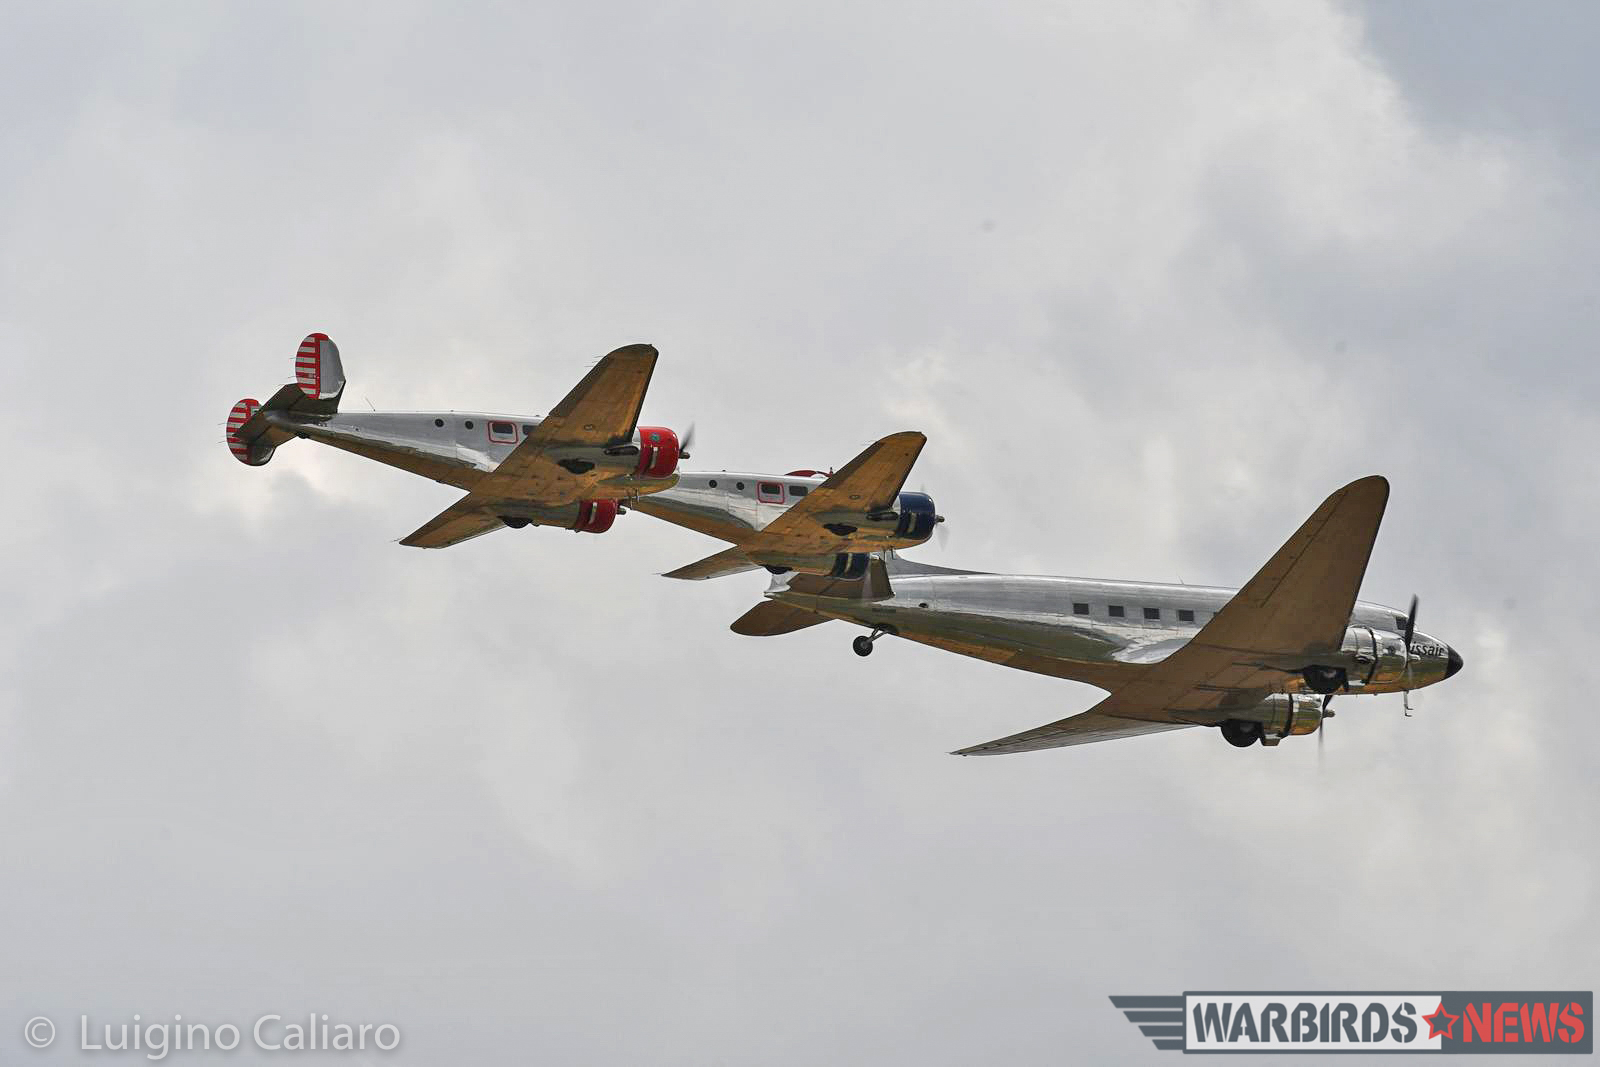 The Swissair DC-3 flies in tight formation with a pair of similarly-polished Beech Model 18s. (photo by Luigino Caliaro)